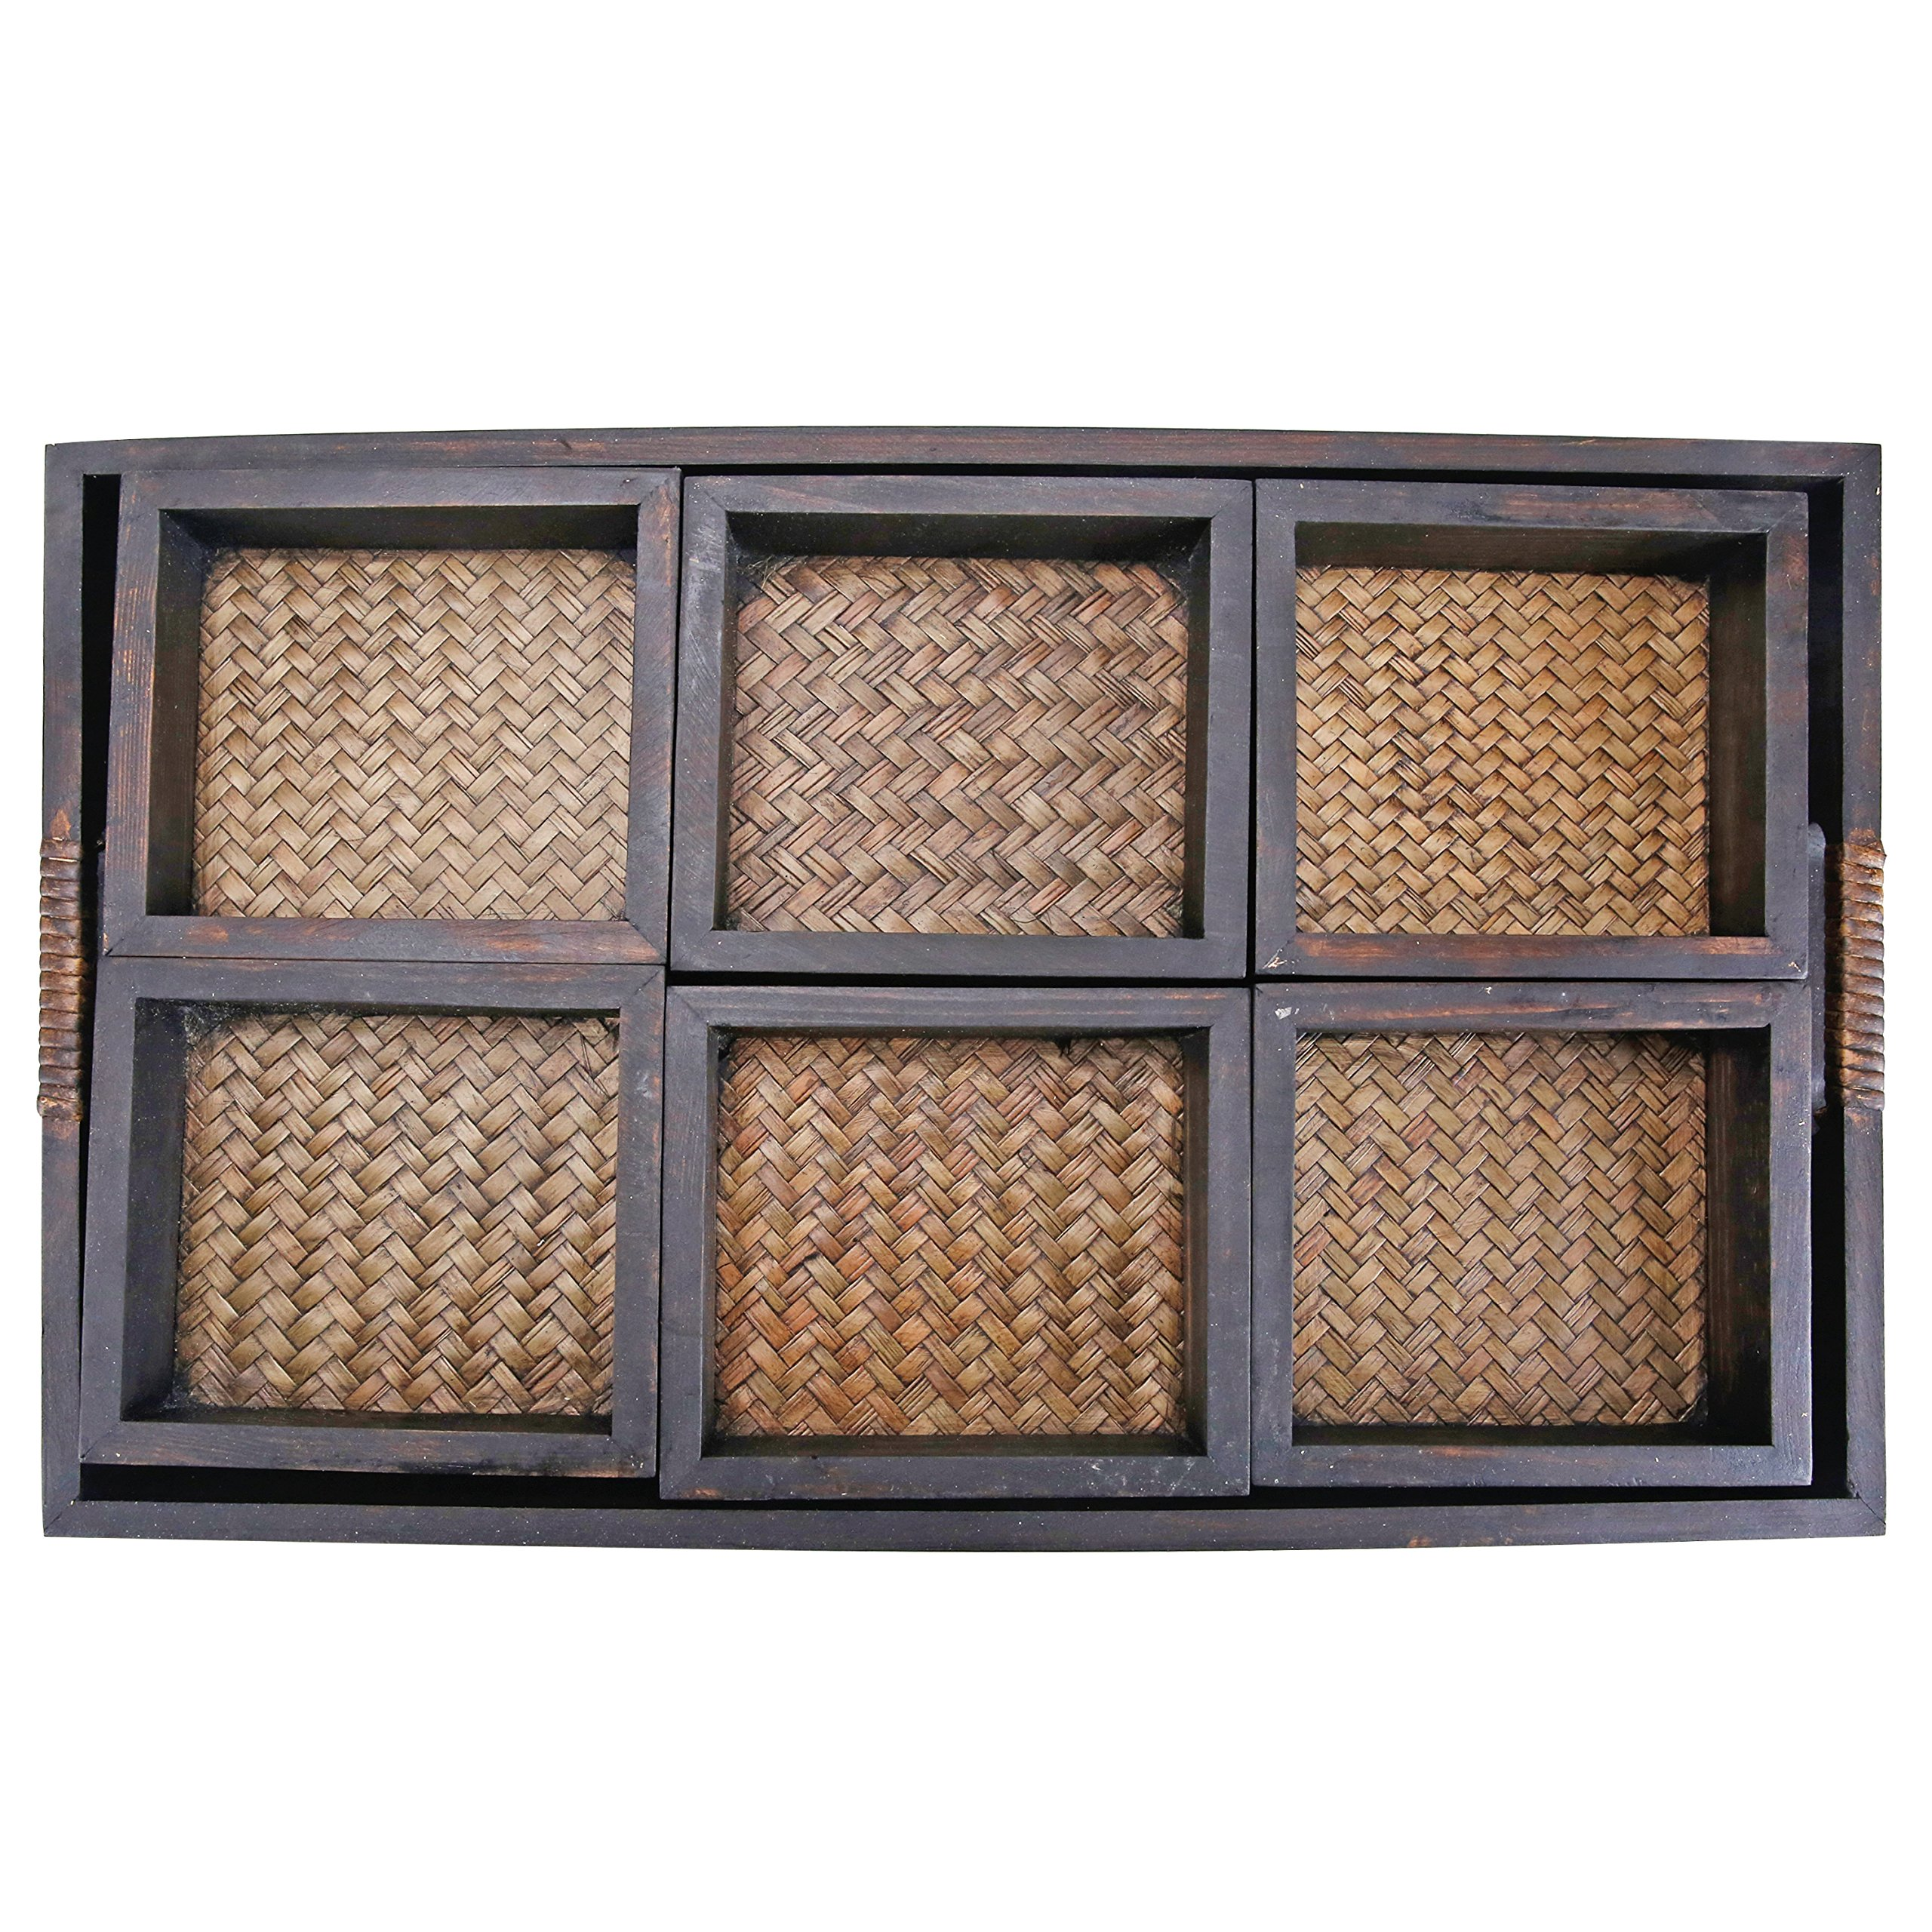 MyGift 7 Piece Flocked Nesting Mango Wood and Woven Rattan Jewelry Organizer Display Trays by MyGift (Image #4)